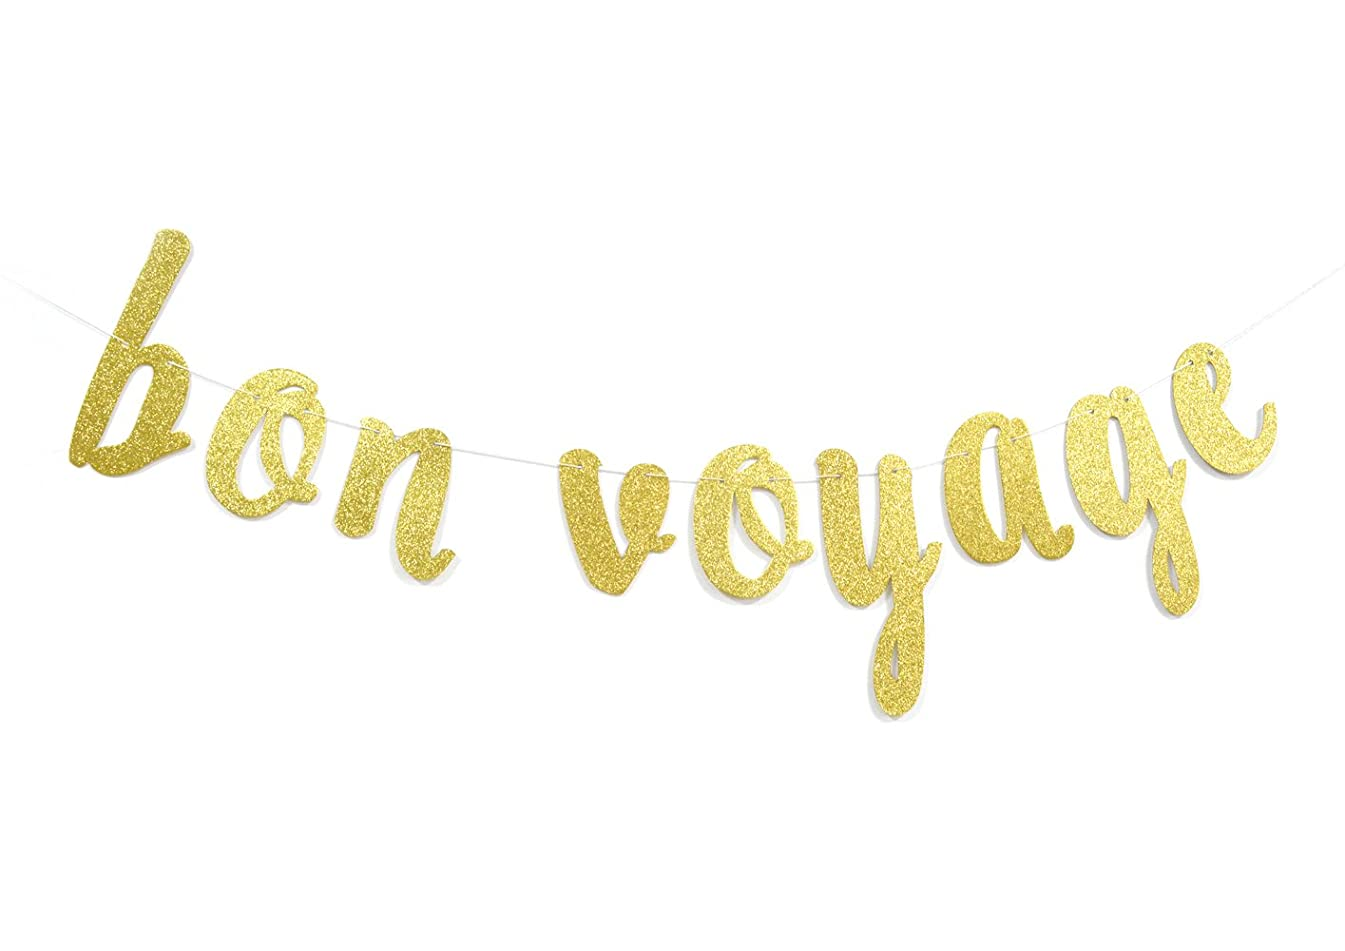 Firefairy Bon Voyage Gold Glitter Cursive Party Banner, Moving Away,Retirement Party Decorations Sign